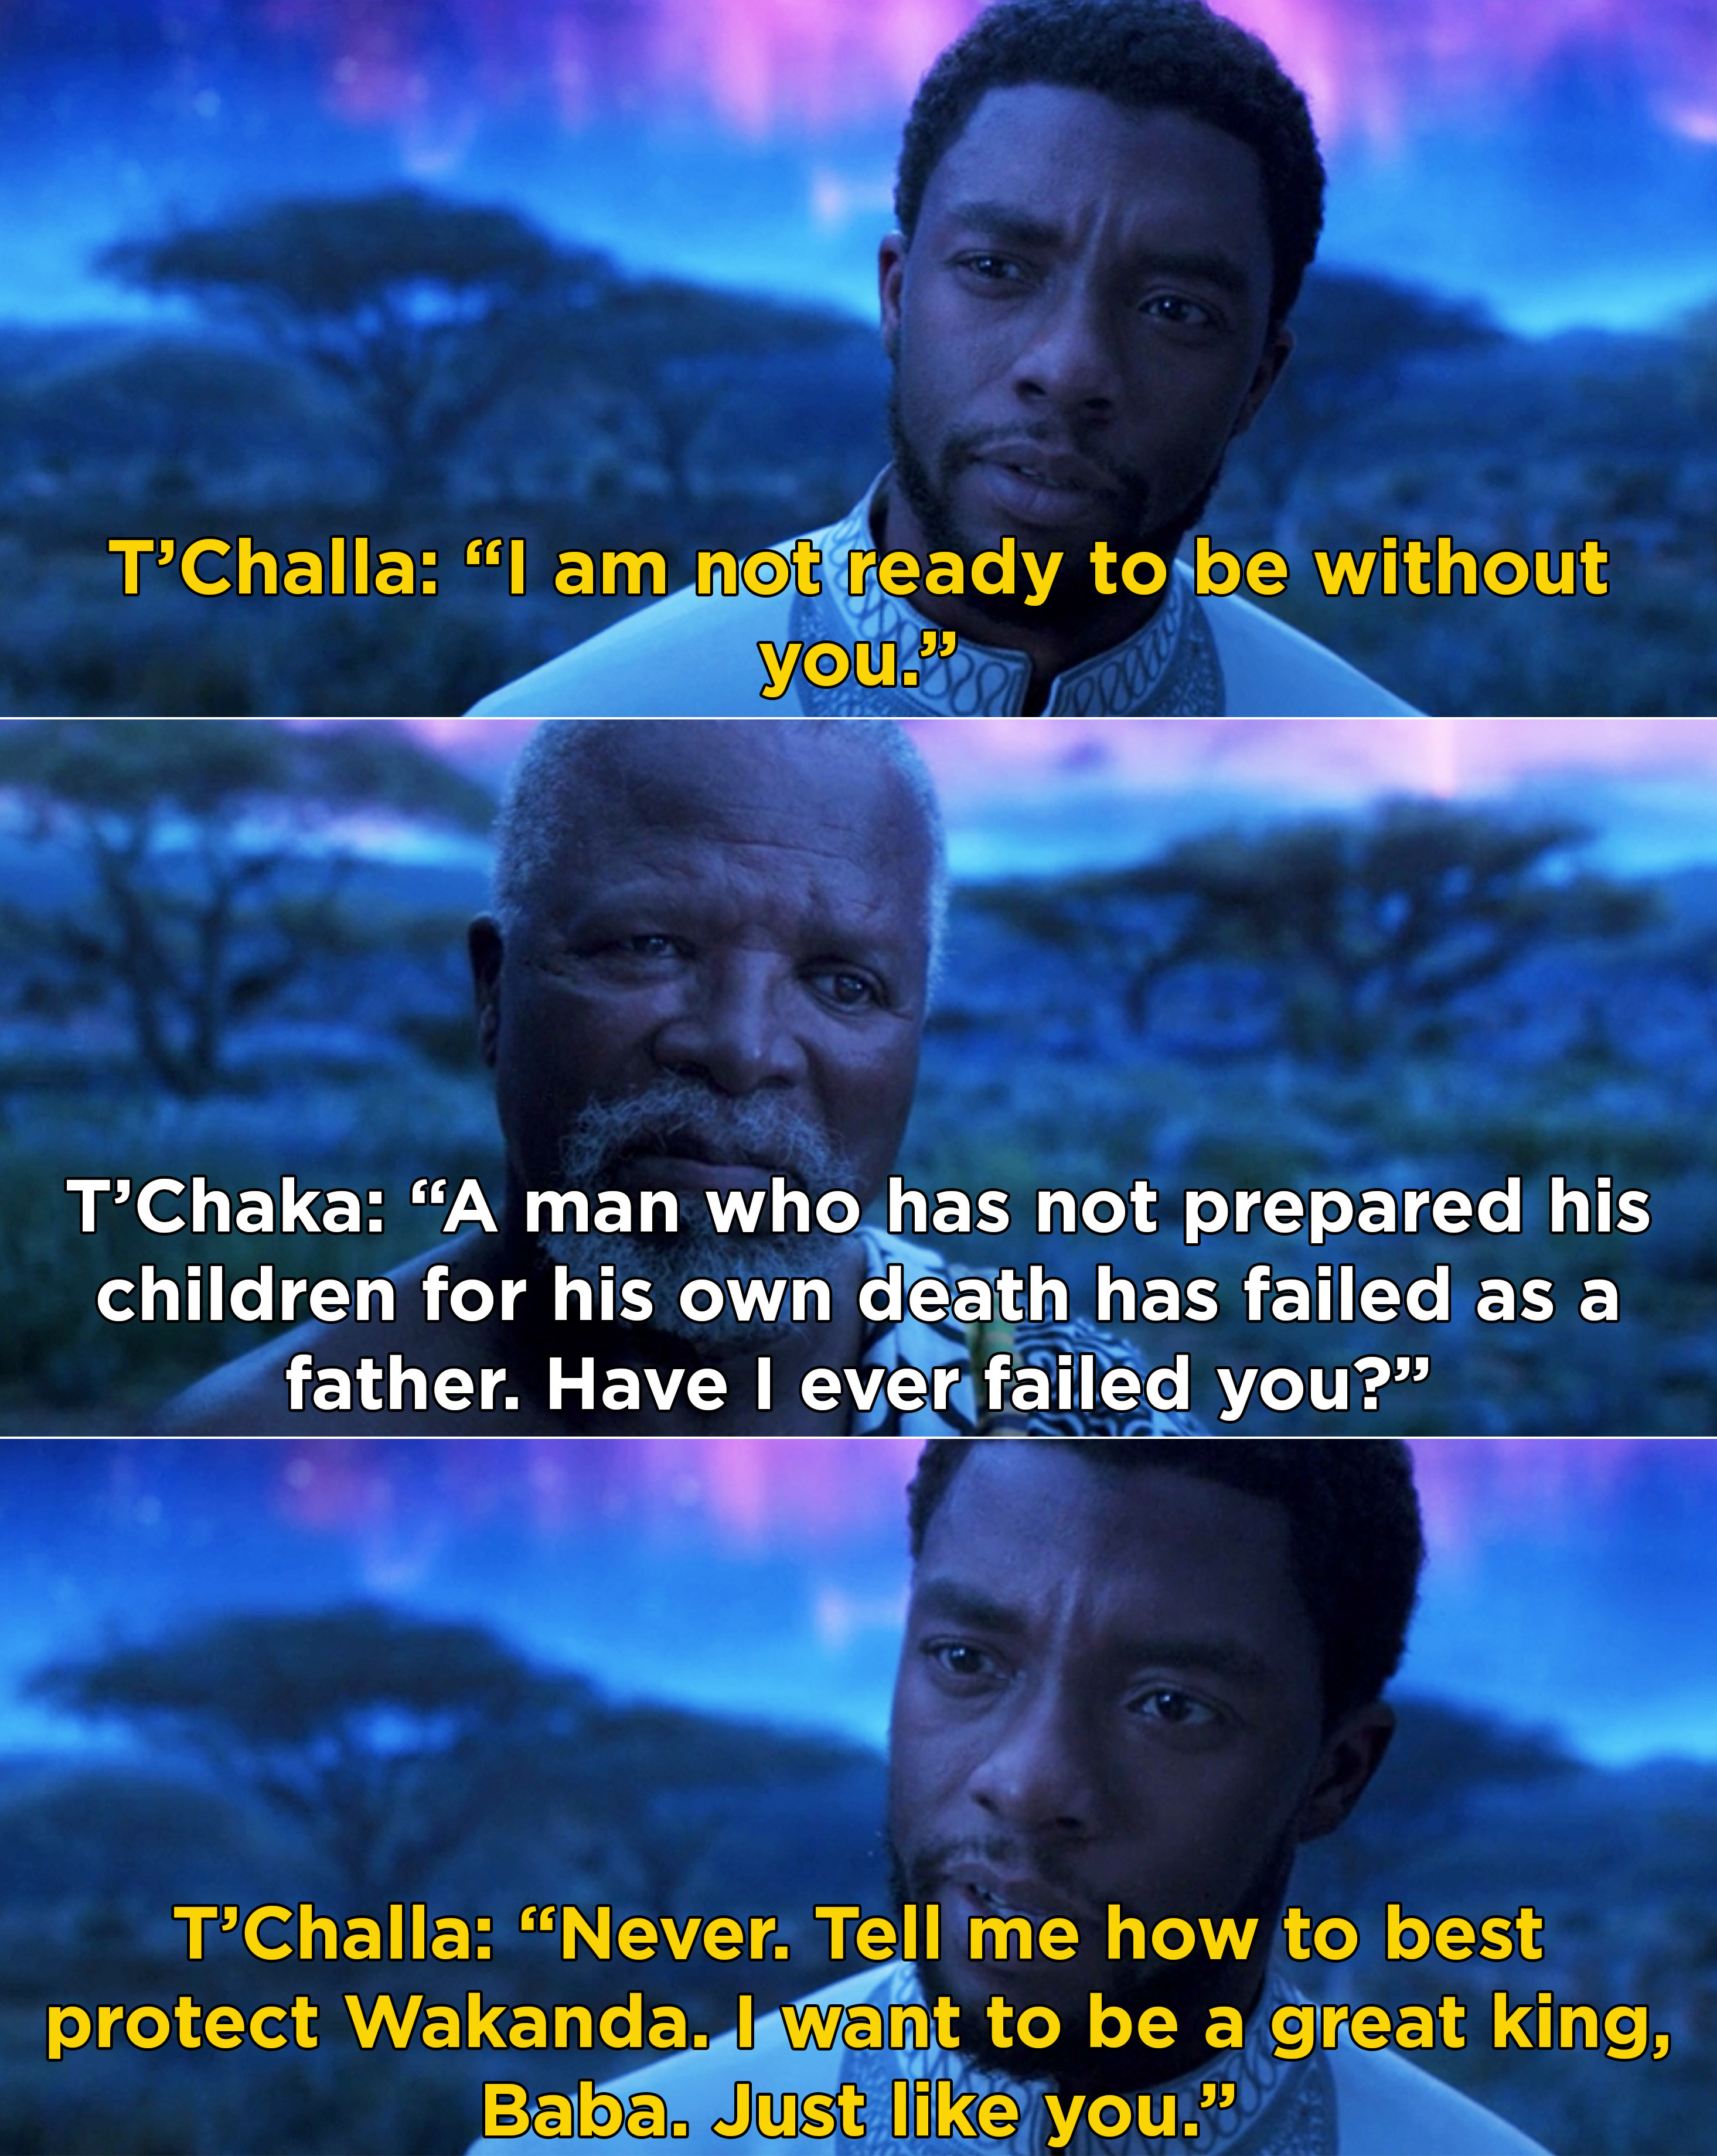 T'Challa telling T'Chaka that he's not ready to be without him and that he wants to be a great king, and T'Chaka saying he has failed if his children were not prepared for his death